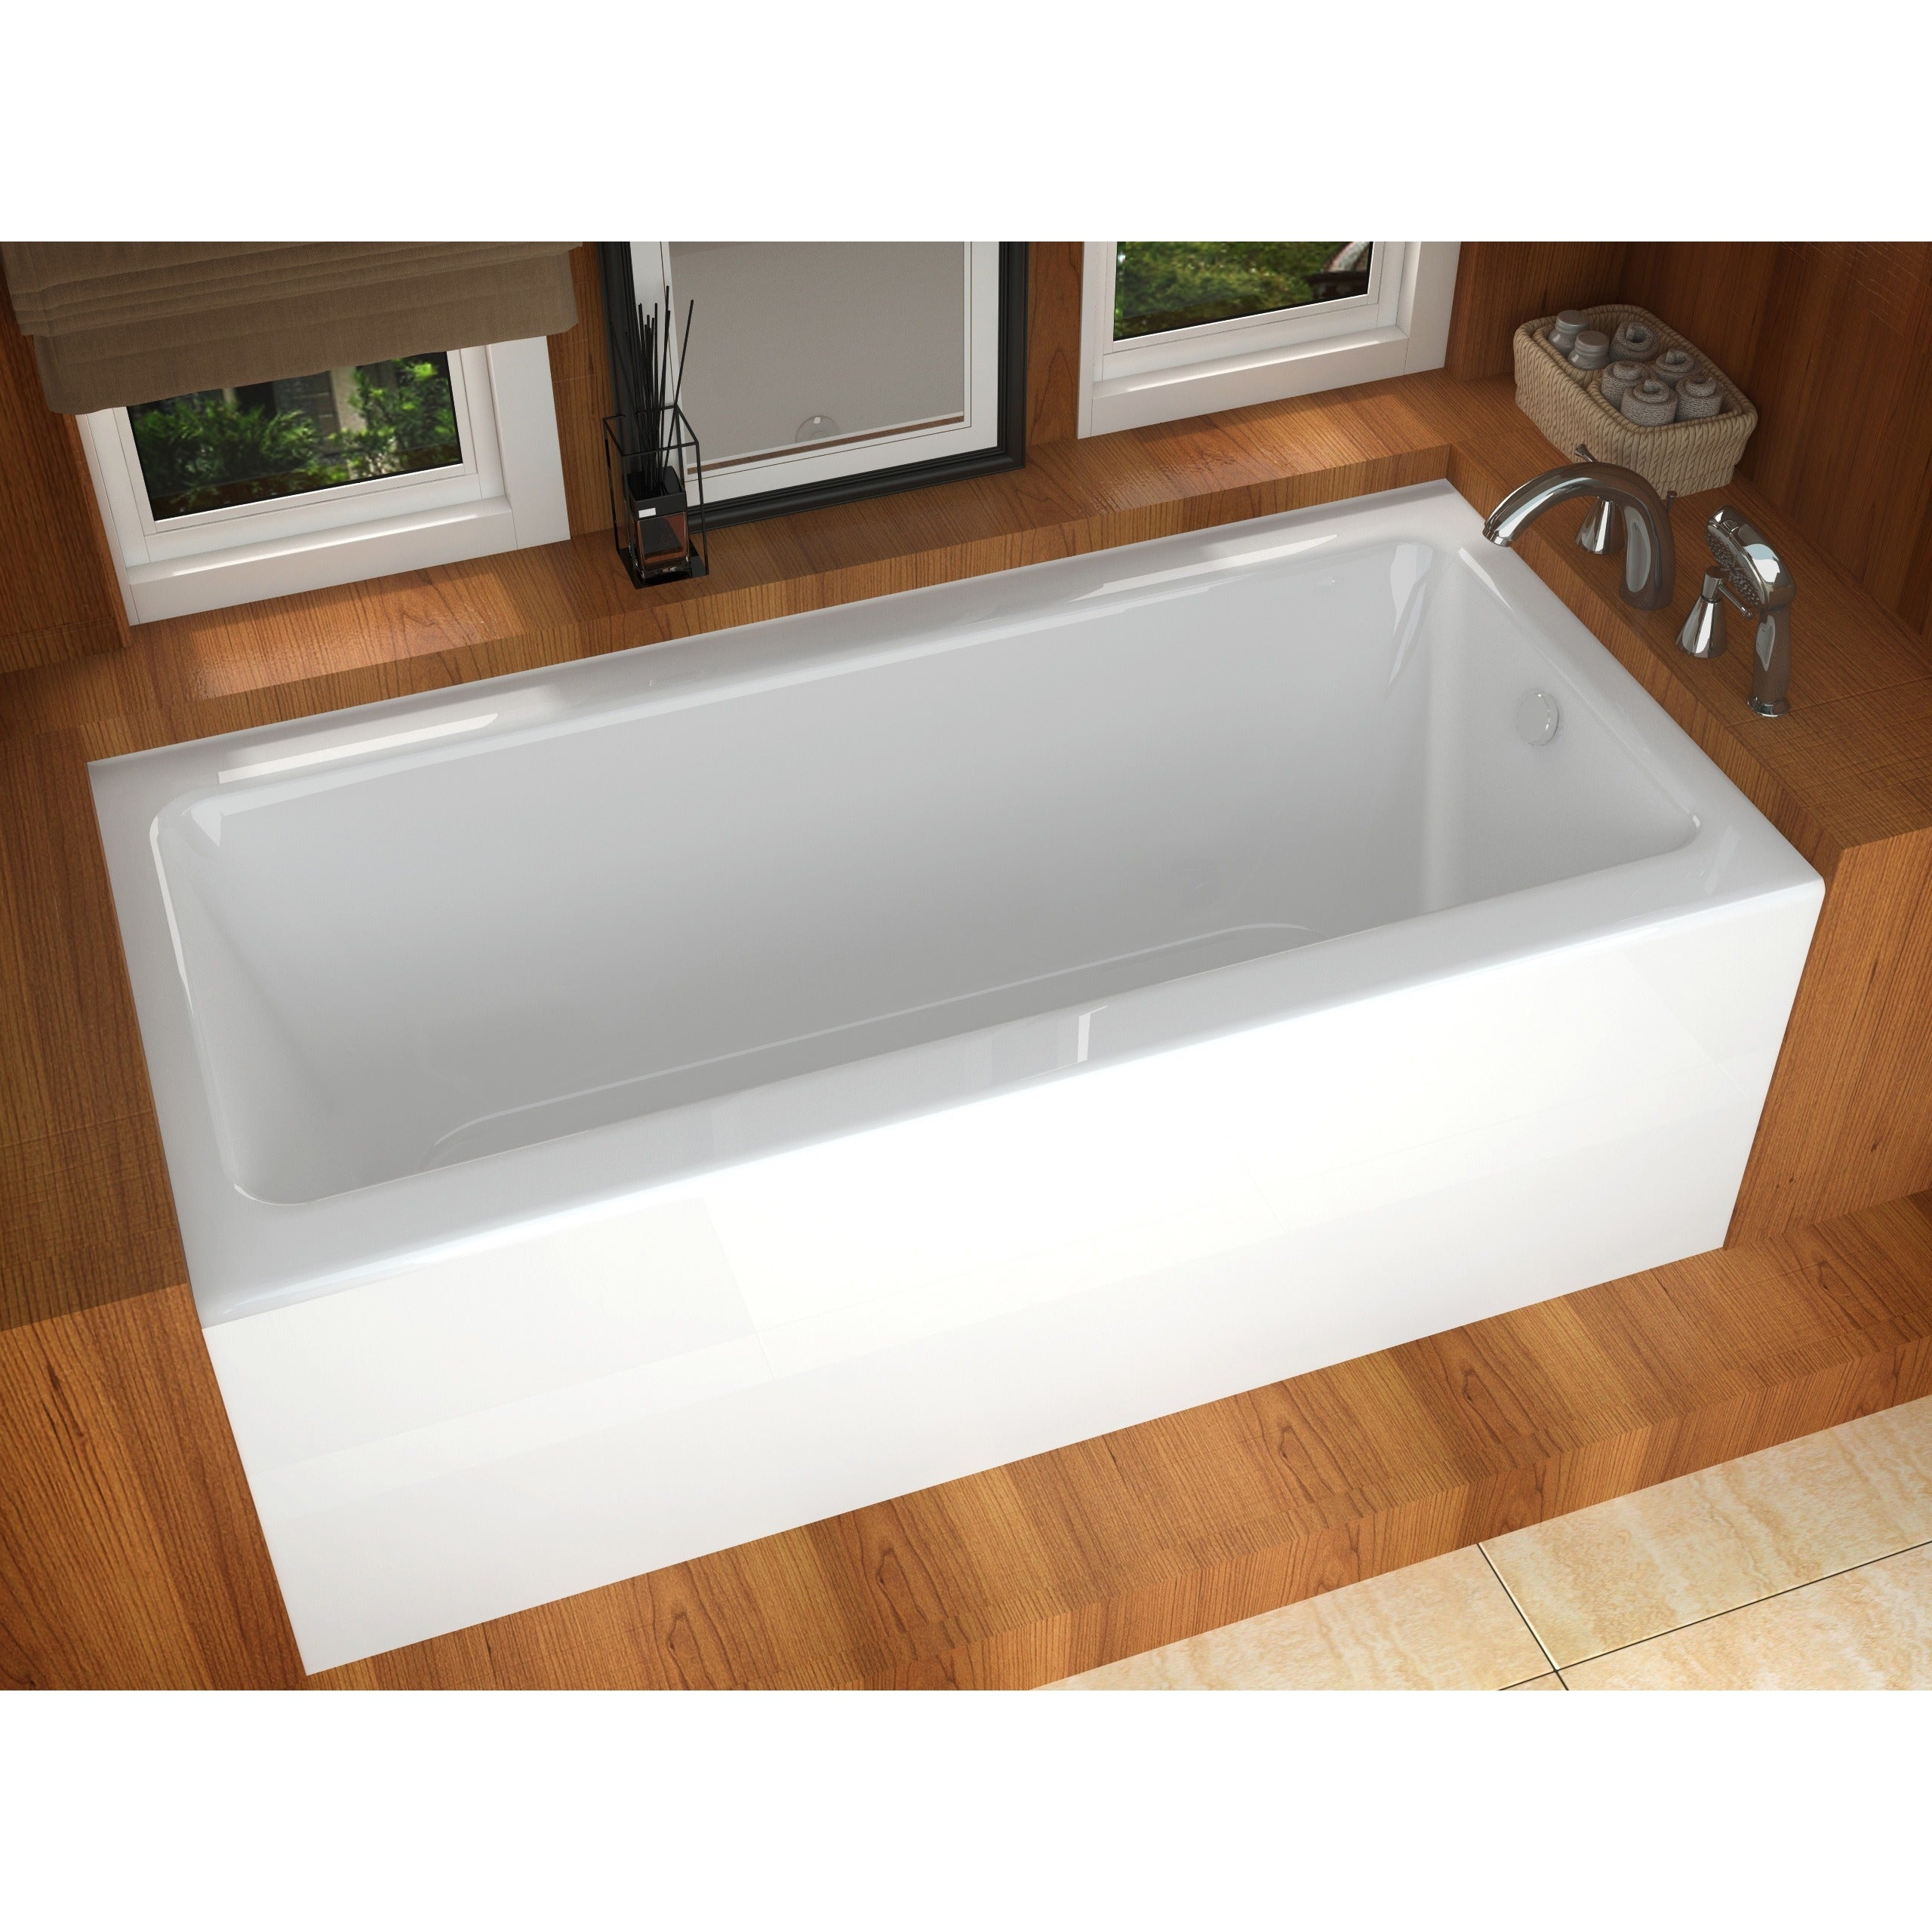 Shop Atlantis Whirlpools Soho 30 x 60 Front Skirted Tub in White ...